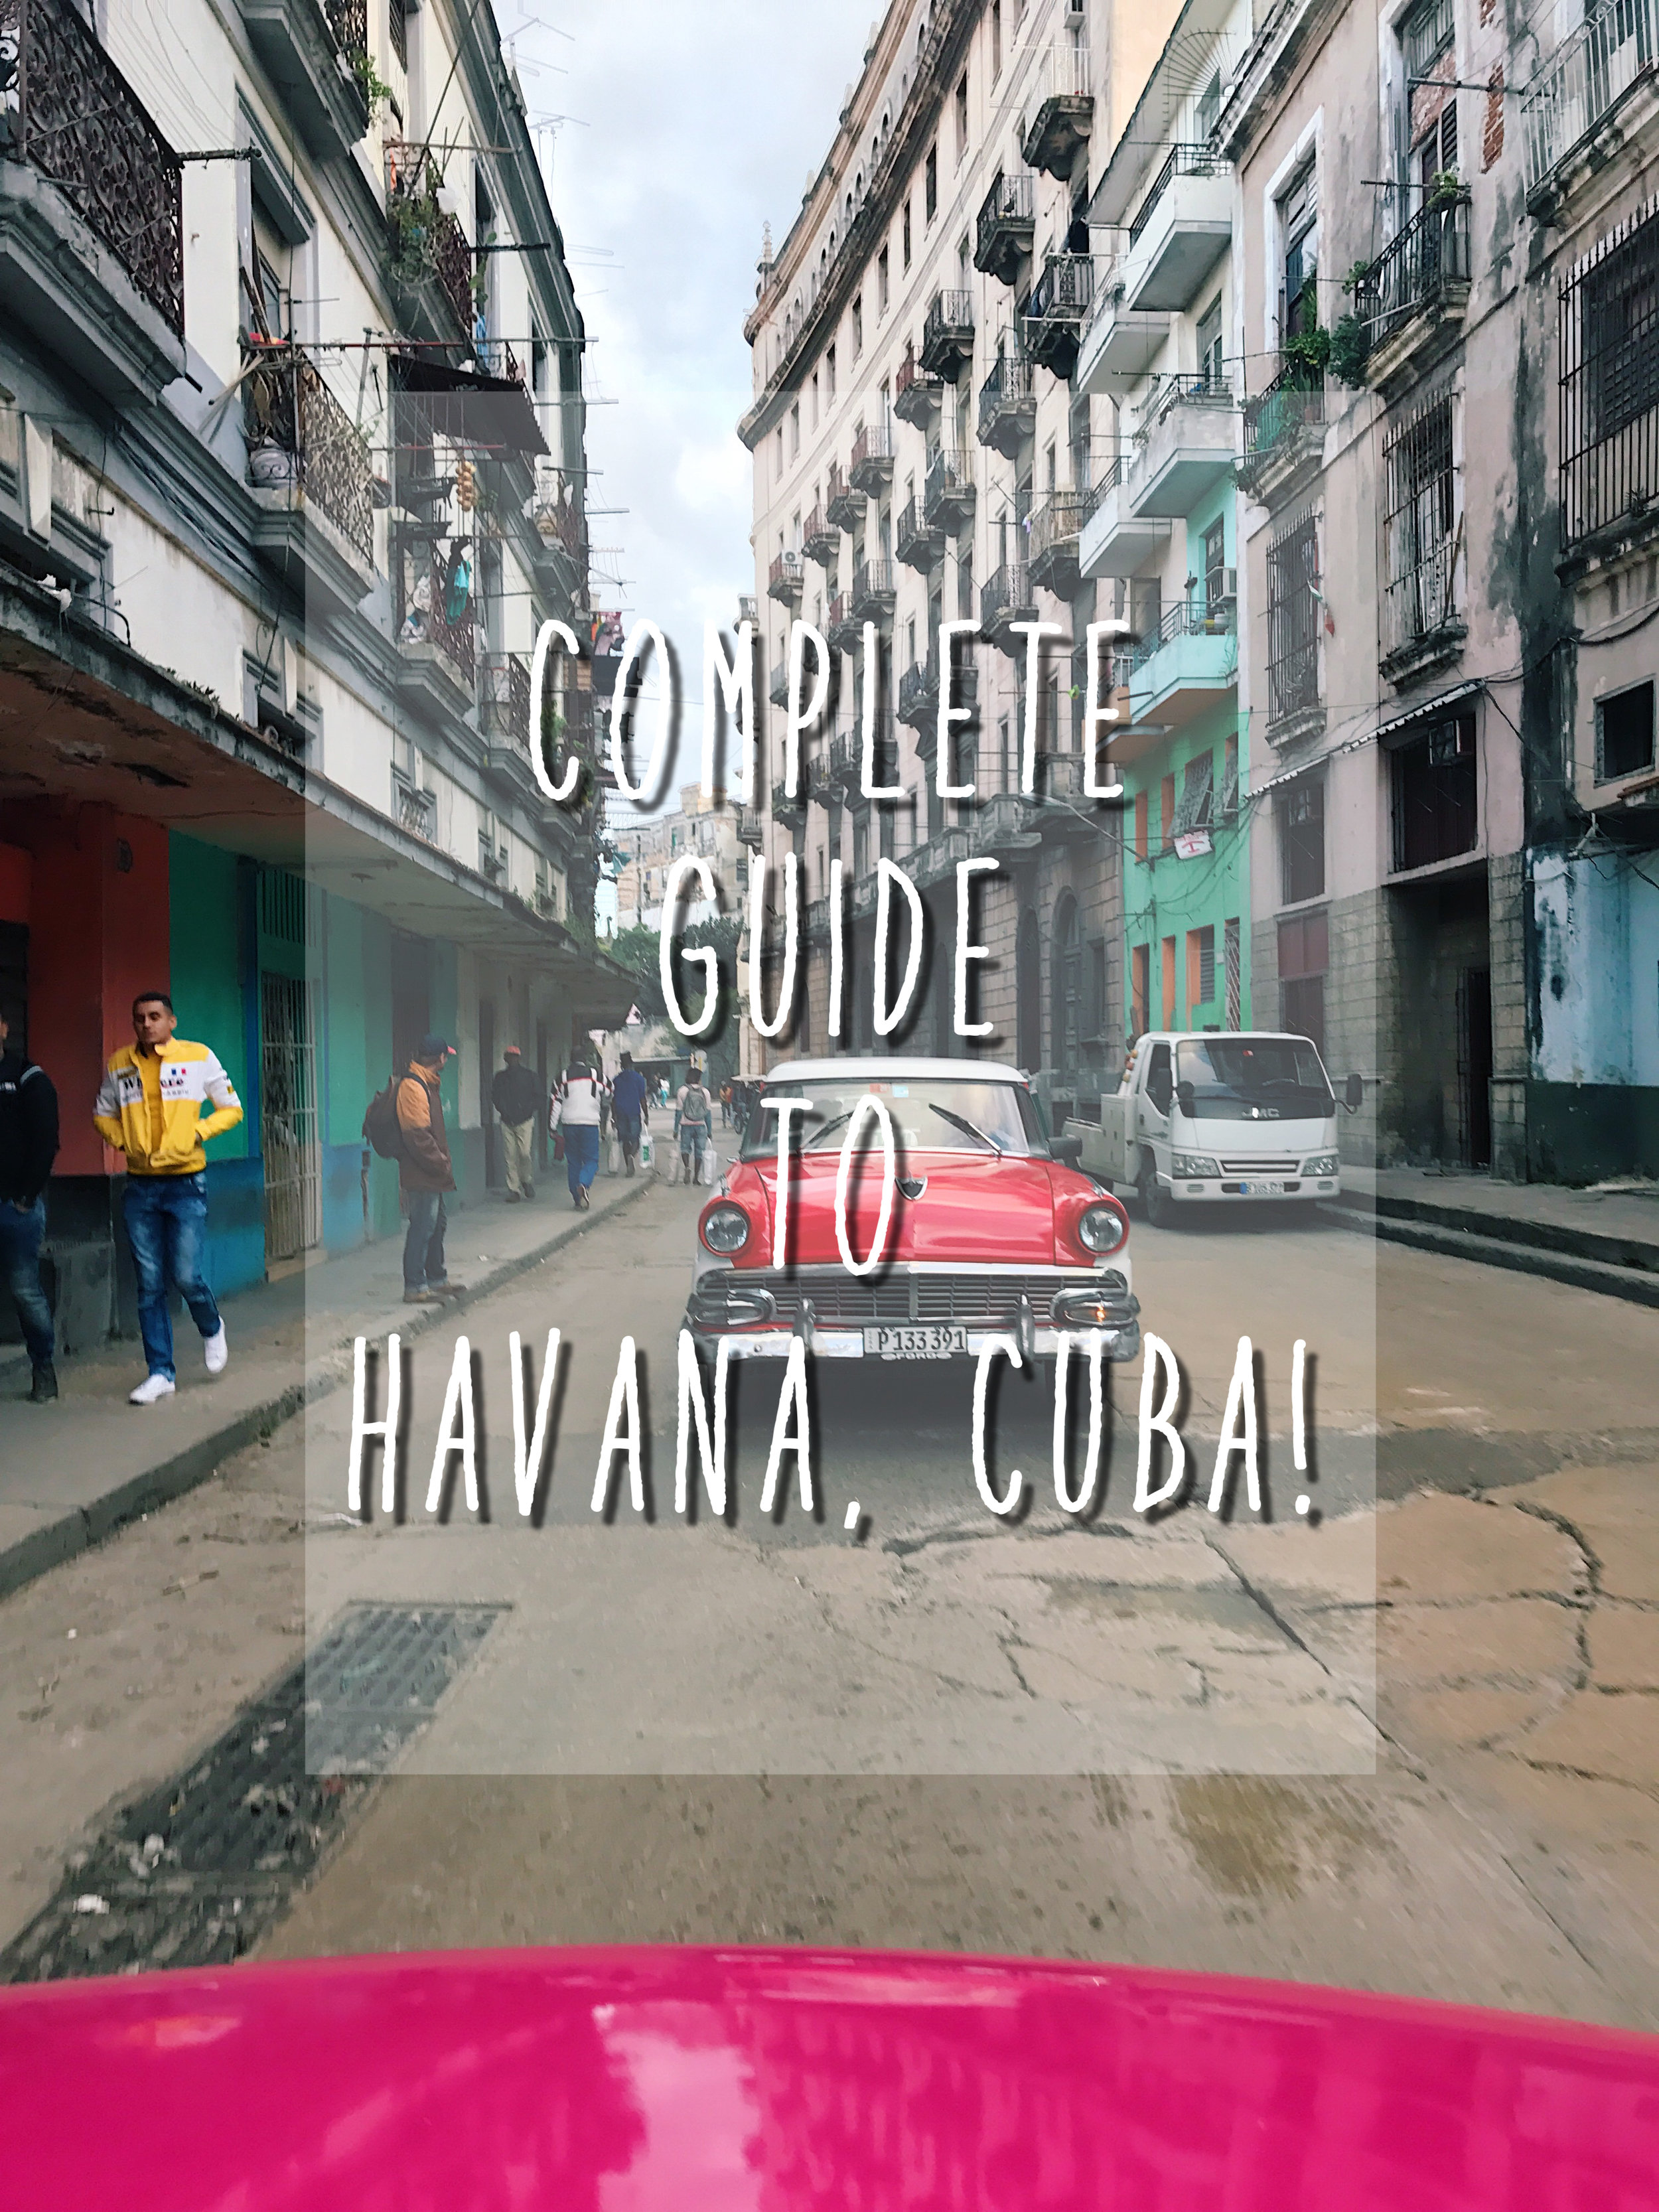 Complete guide of what you need to know before traveling to Cuba!